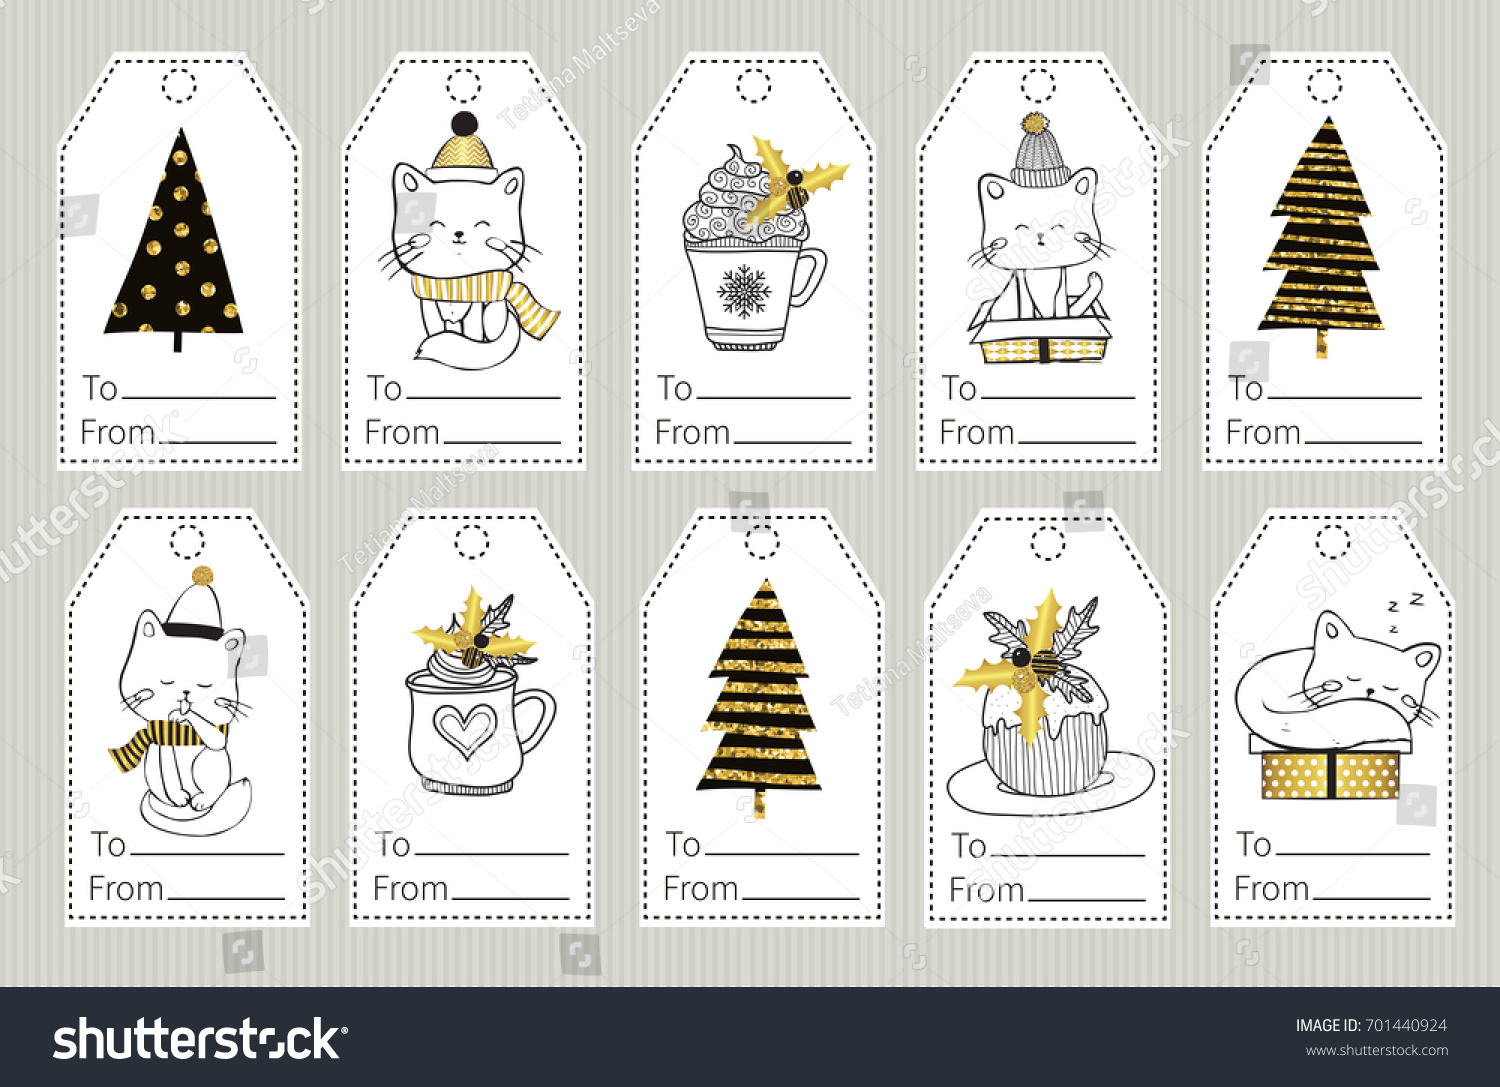 Set Christmas New Year Gift Tags Stock Vector Royalty Free